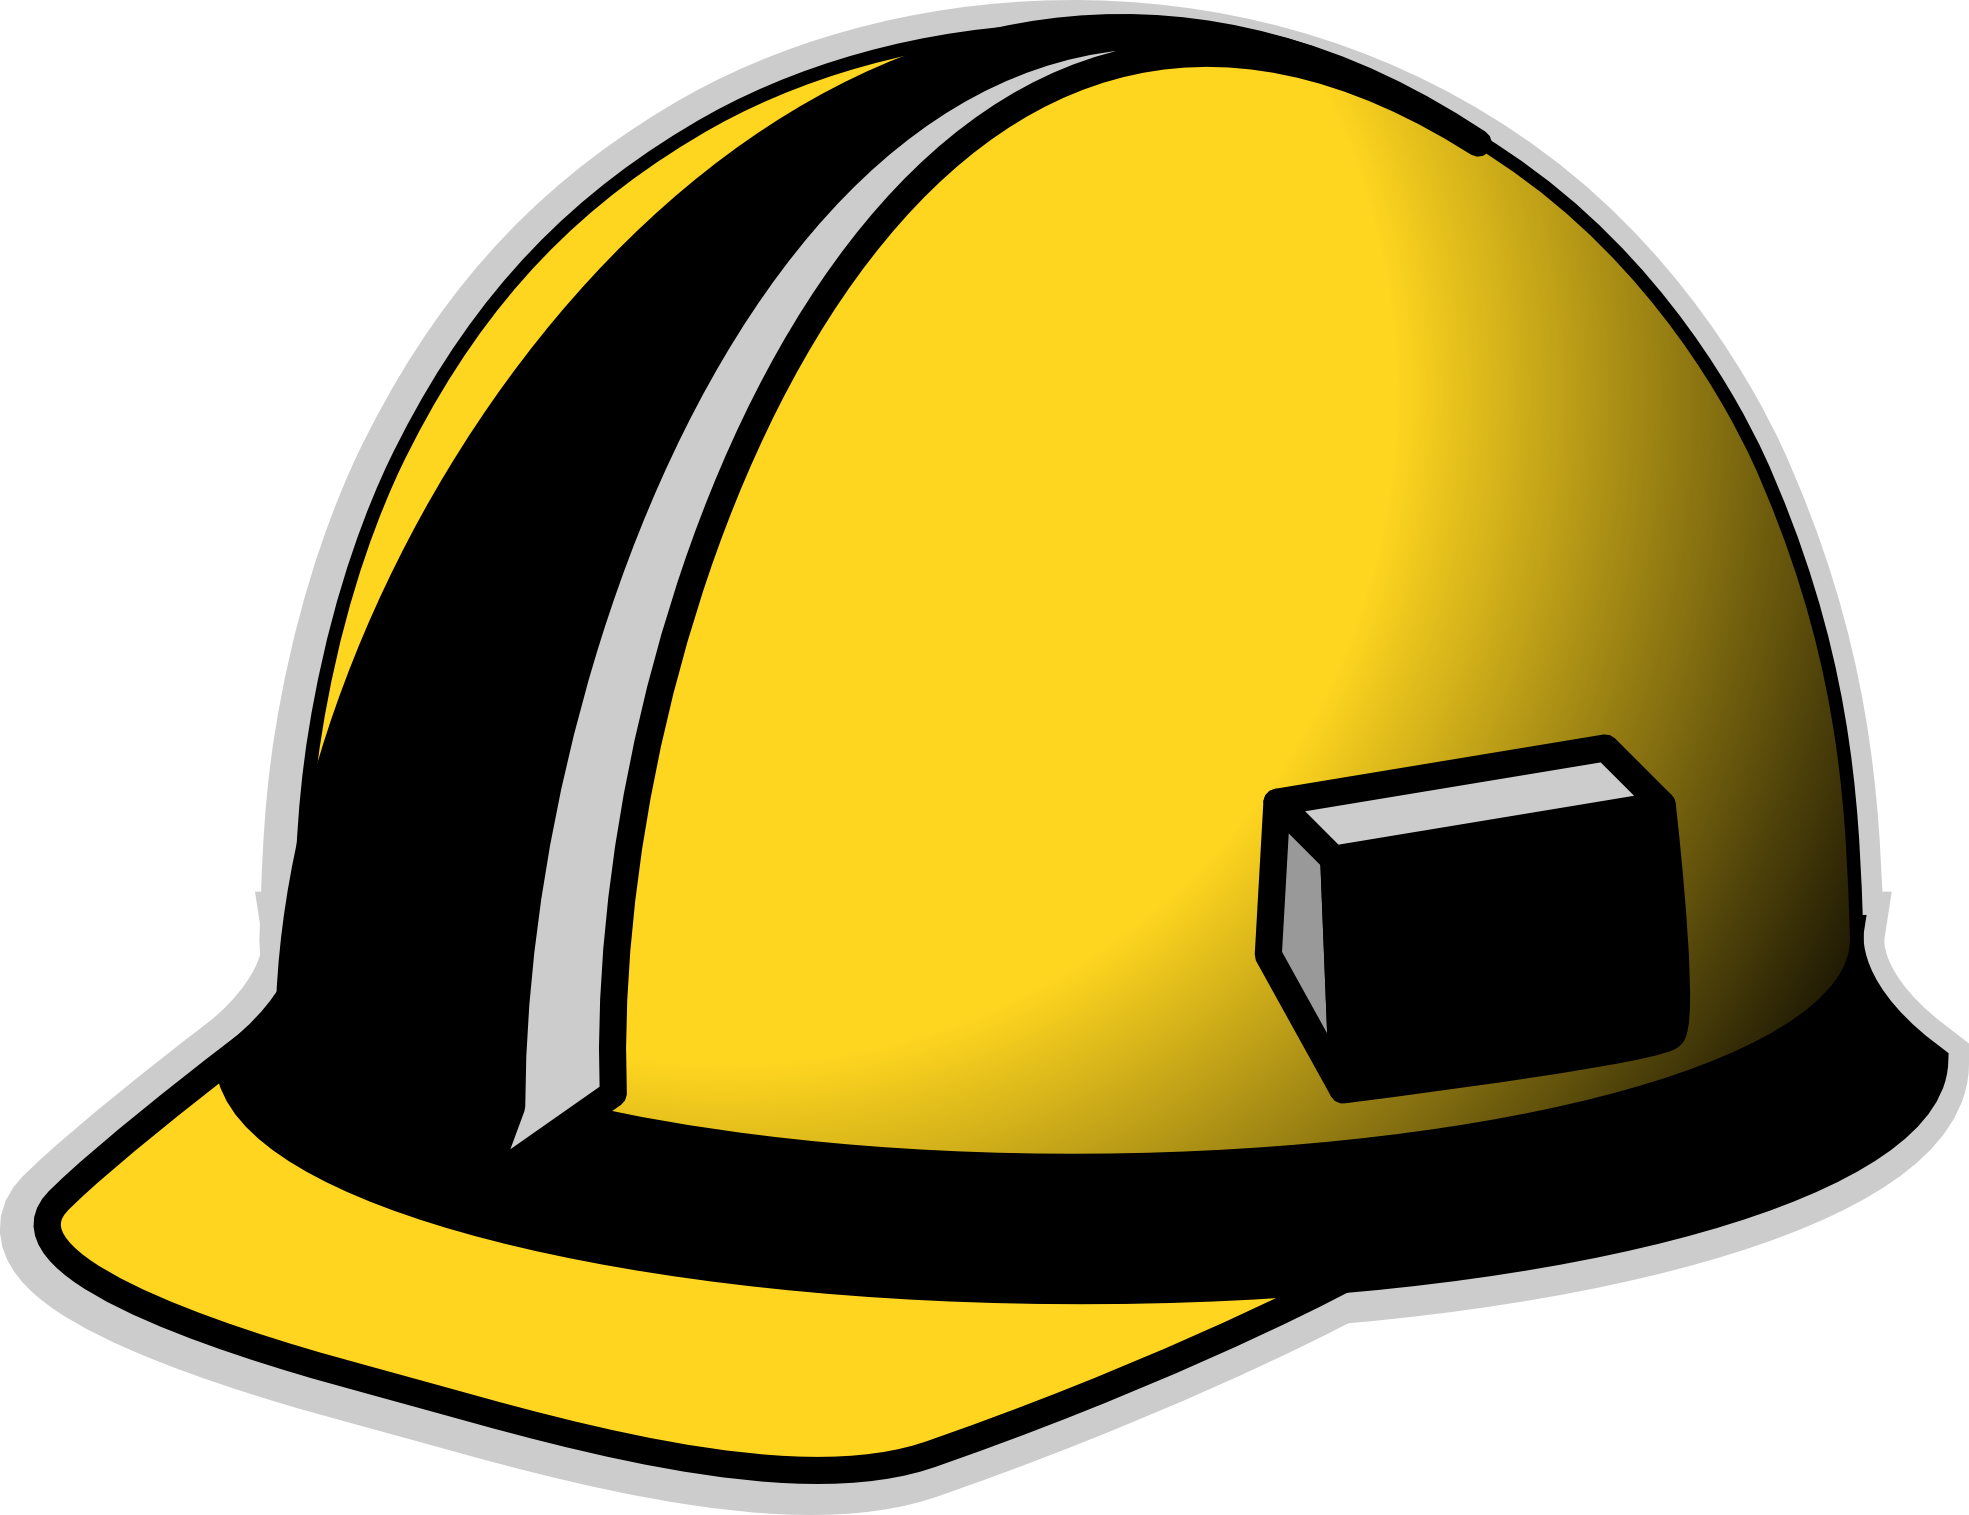 Construction Hat Clipart Clipart Panda F-Construction Hat Clipart Clipart Panda Free Clipart Images-5